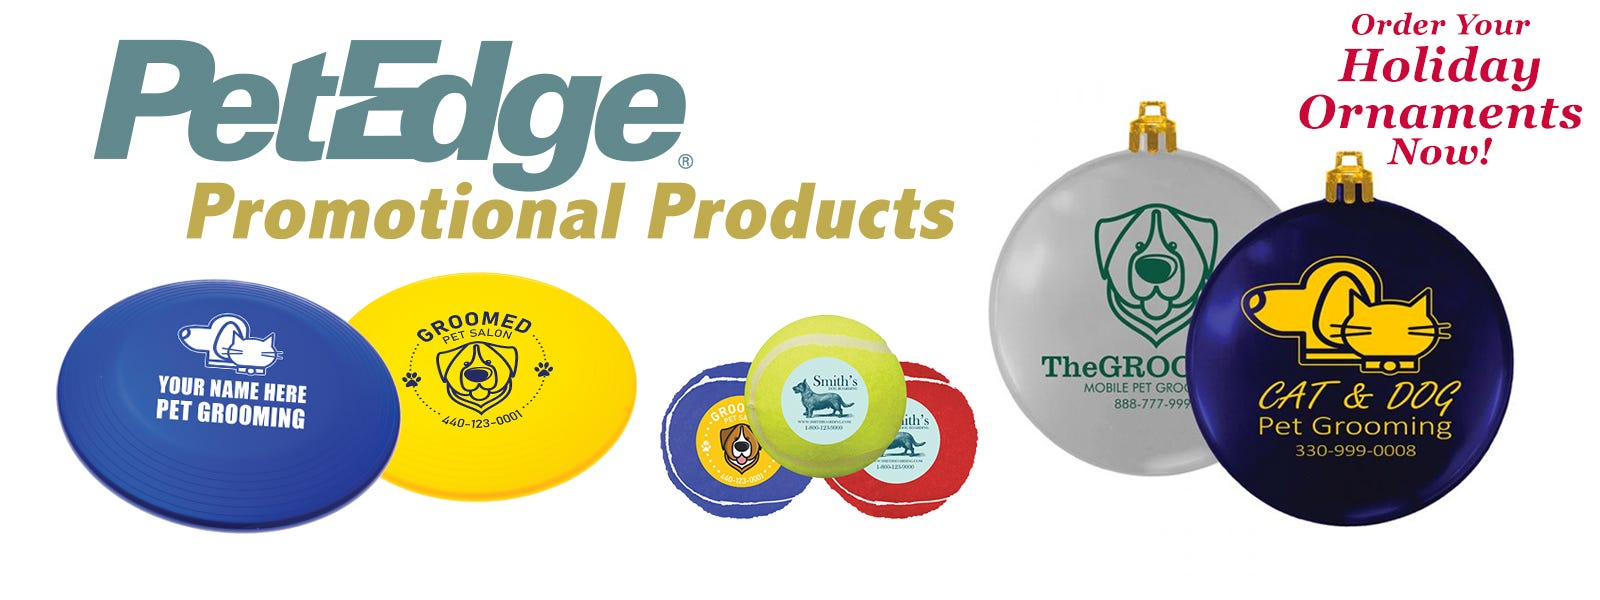 PetEdge Promotional Products